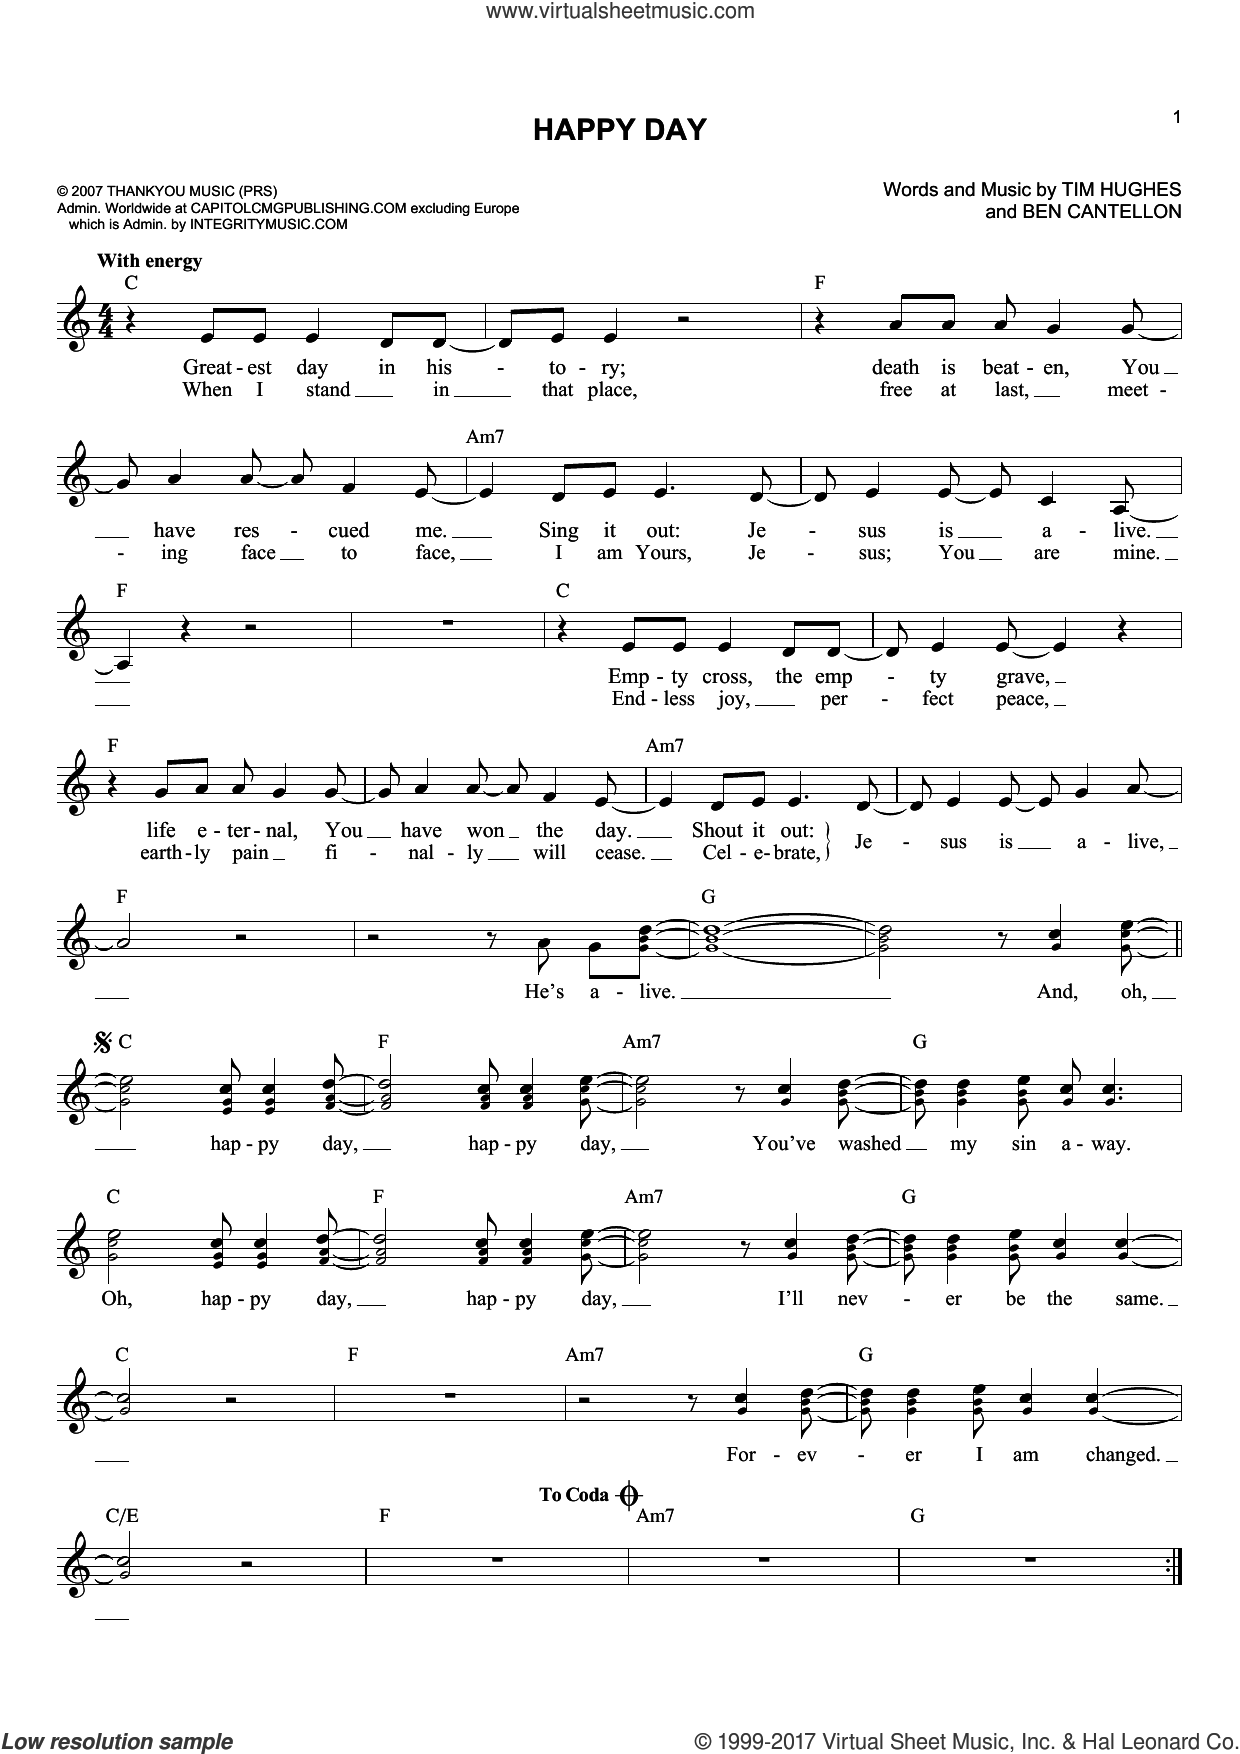 Happy Day sheet music for voice and other instruments (fake book) by Tim Hughes and Ben Cantellon, intermediate skill level